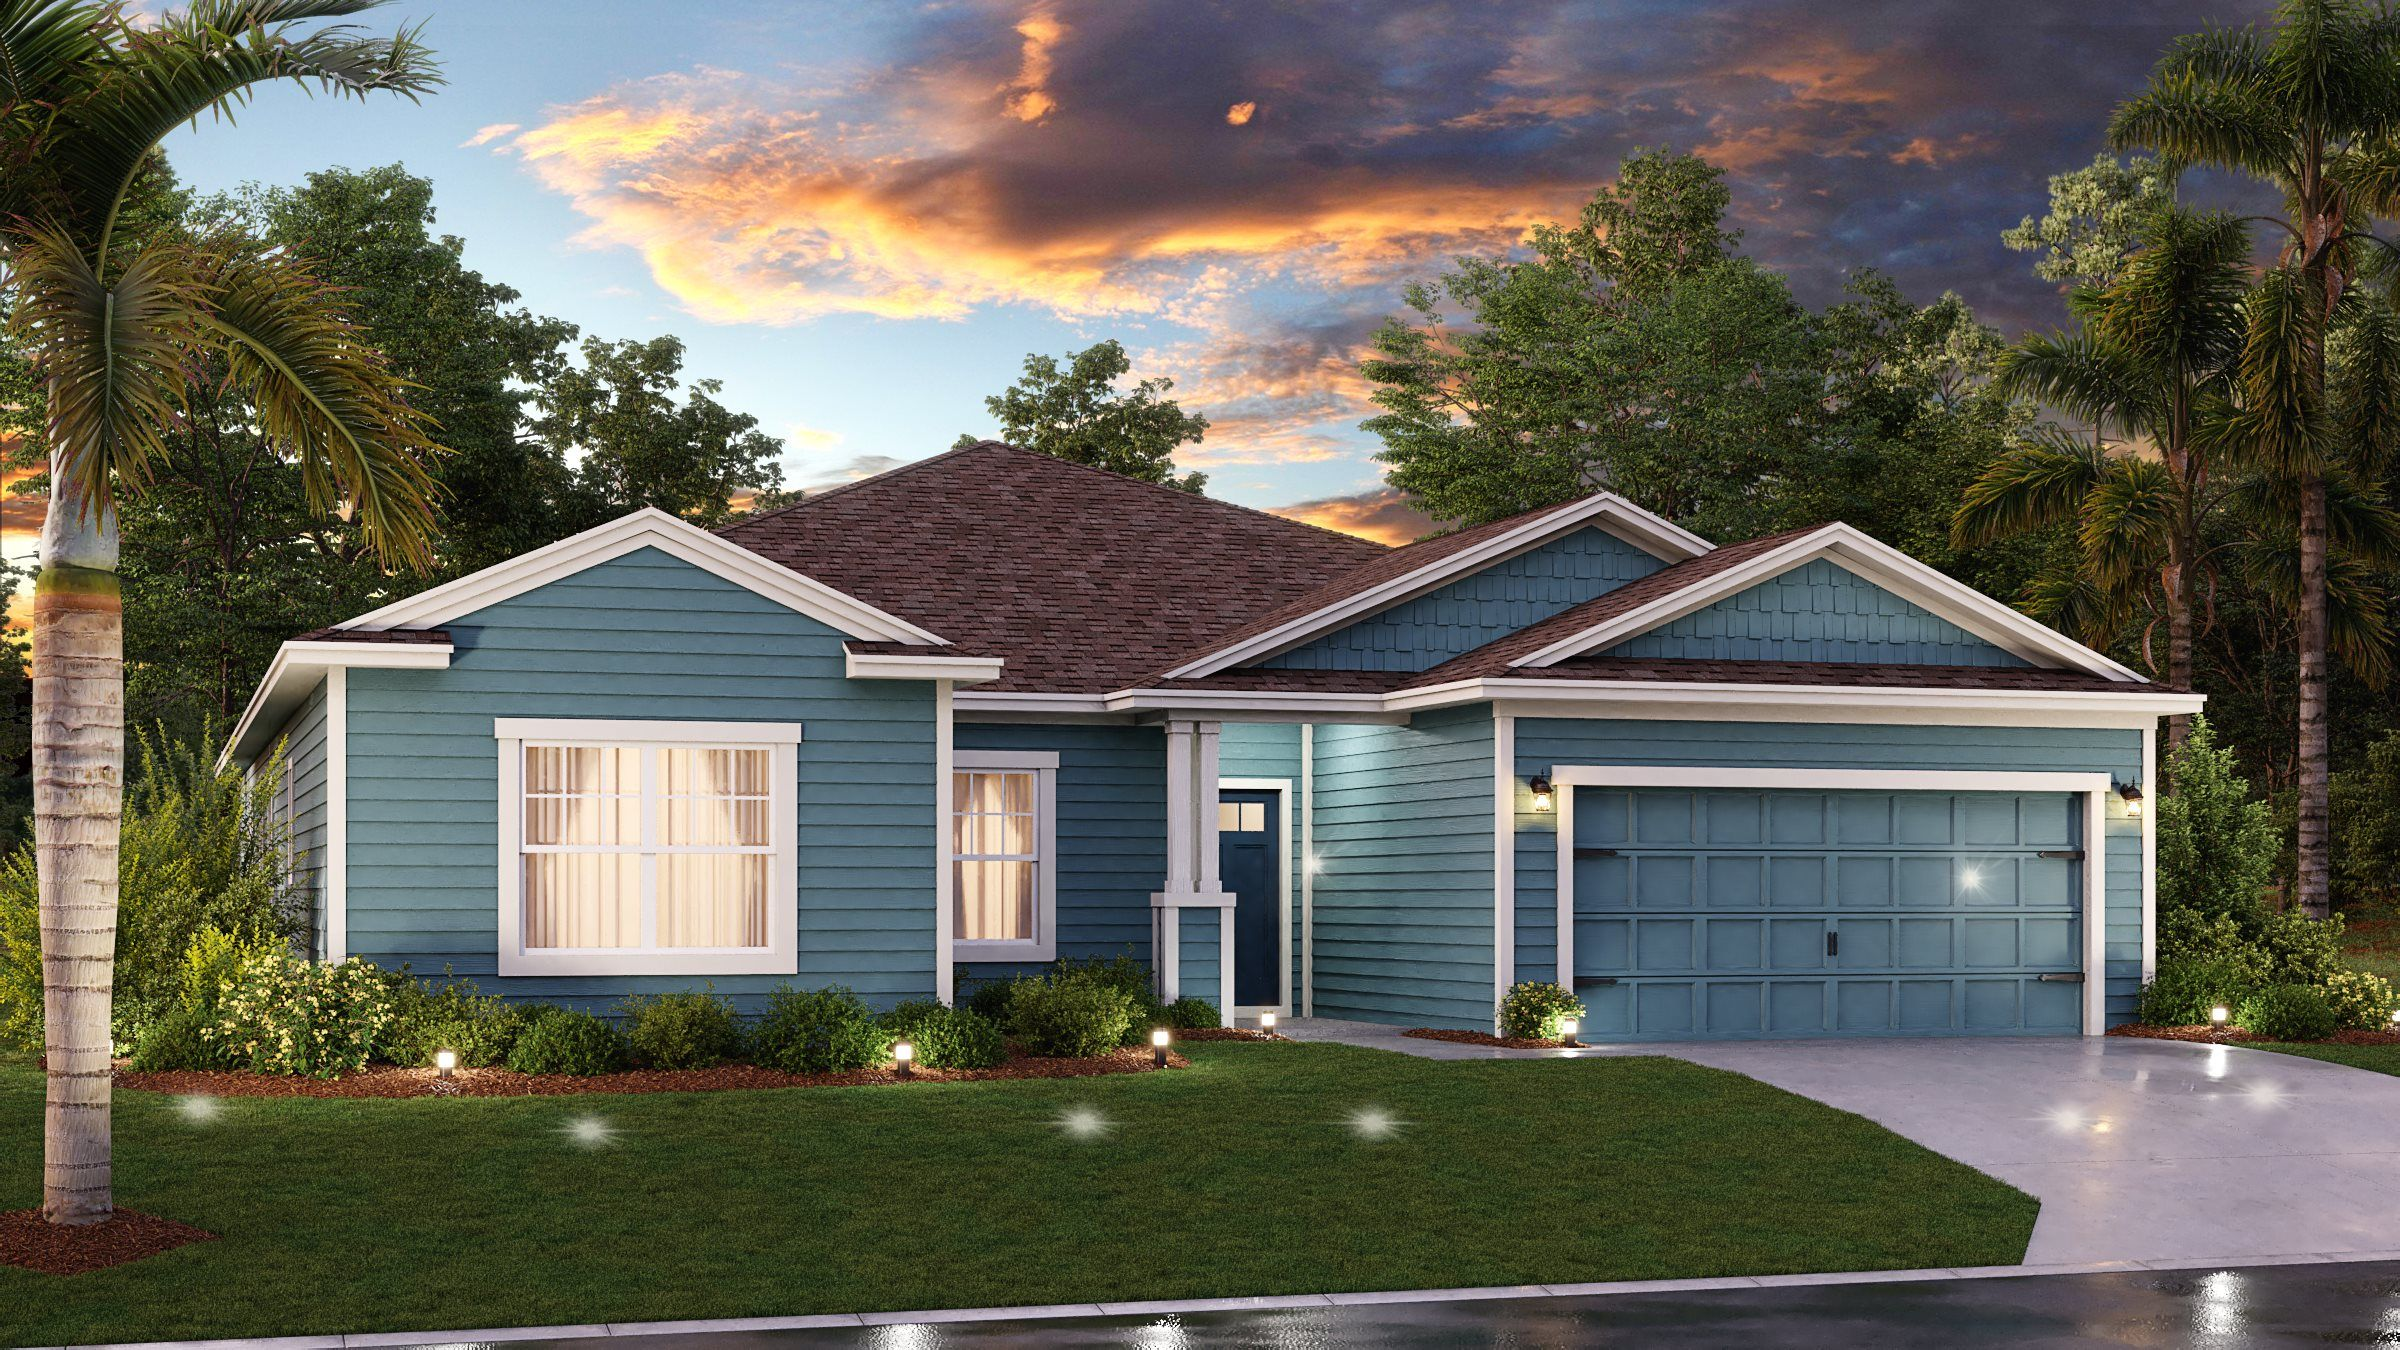 'Storey Creek - Executive Collection' by Lennar - Orlando Homebuilding in Orlando